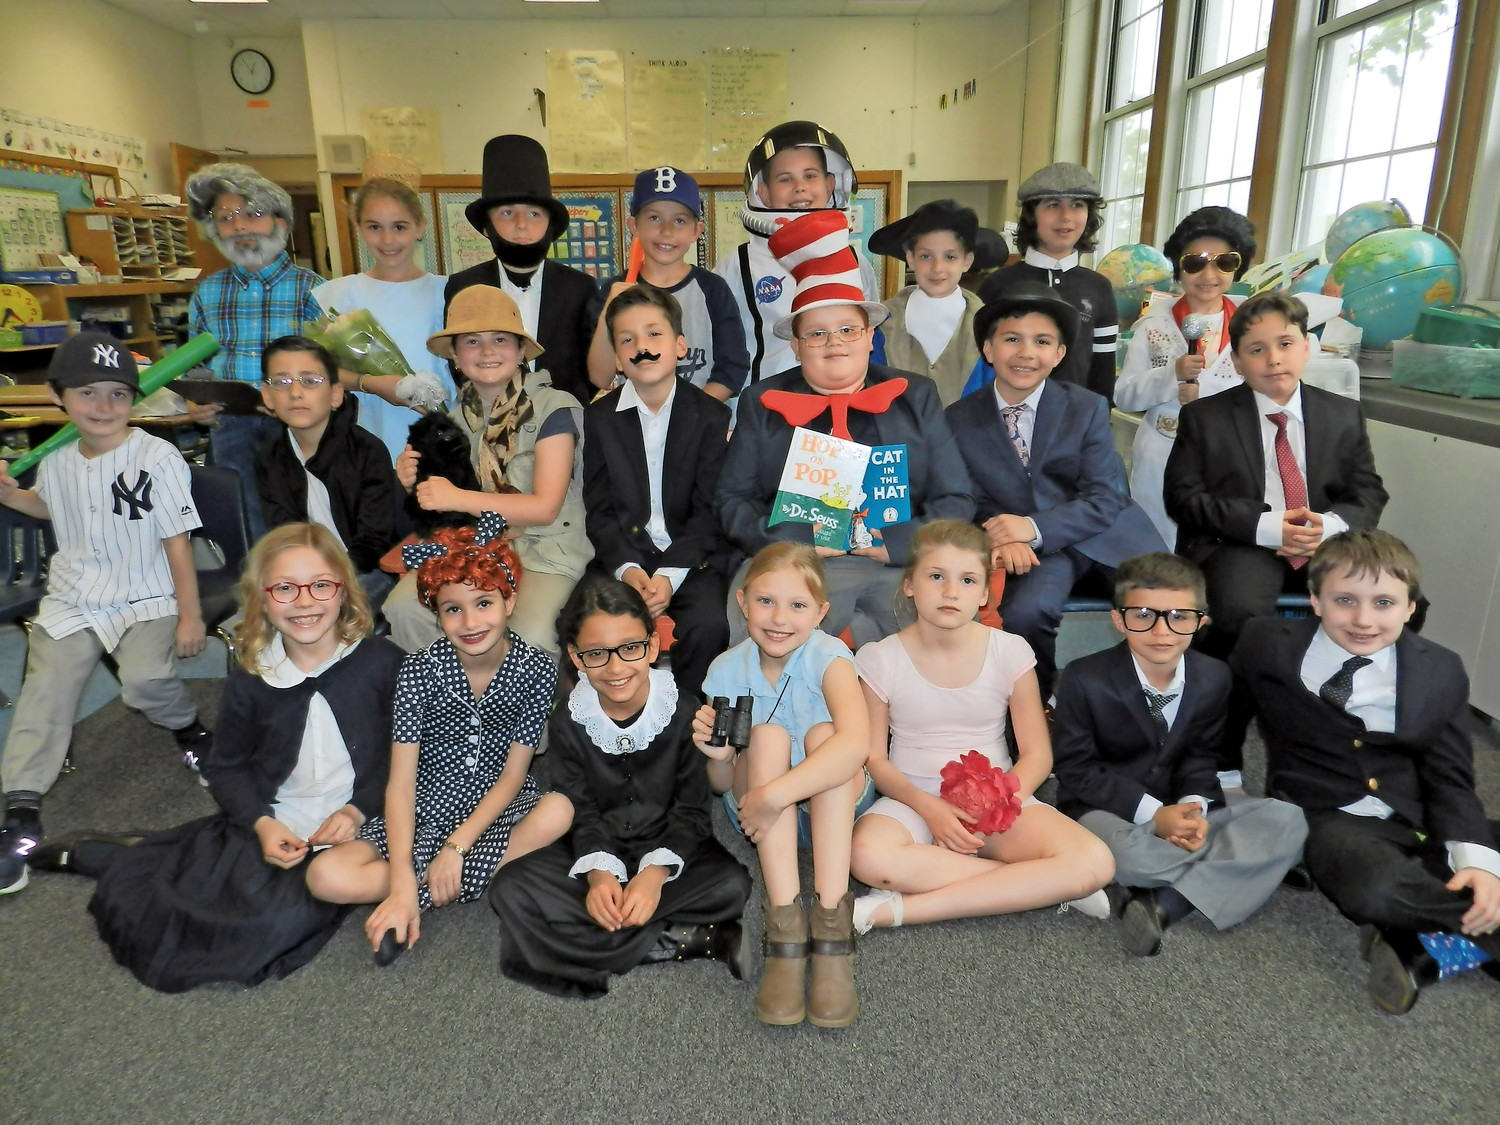 Jovanna LeMonda's third grade students dressed up as impactful individuals from history for Glen Head Elementary School's annual wax museum study.